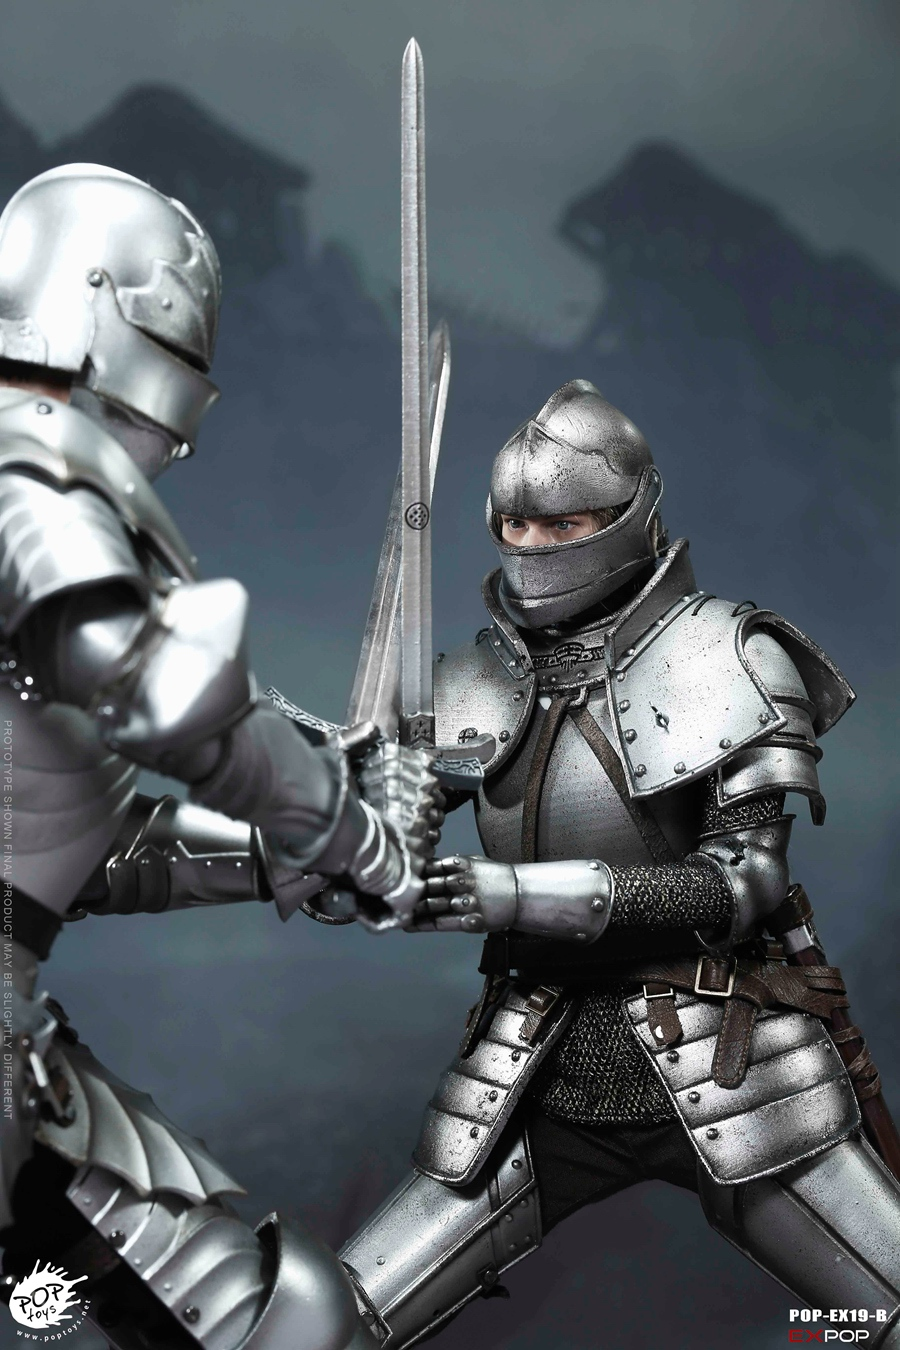 NEW PRODUCT: POPTOYS New Products: 1/6 St. Knights - Assault Edition & Triumph Edition & Iron Armor (POP-EX19 ABC) 16461411